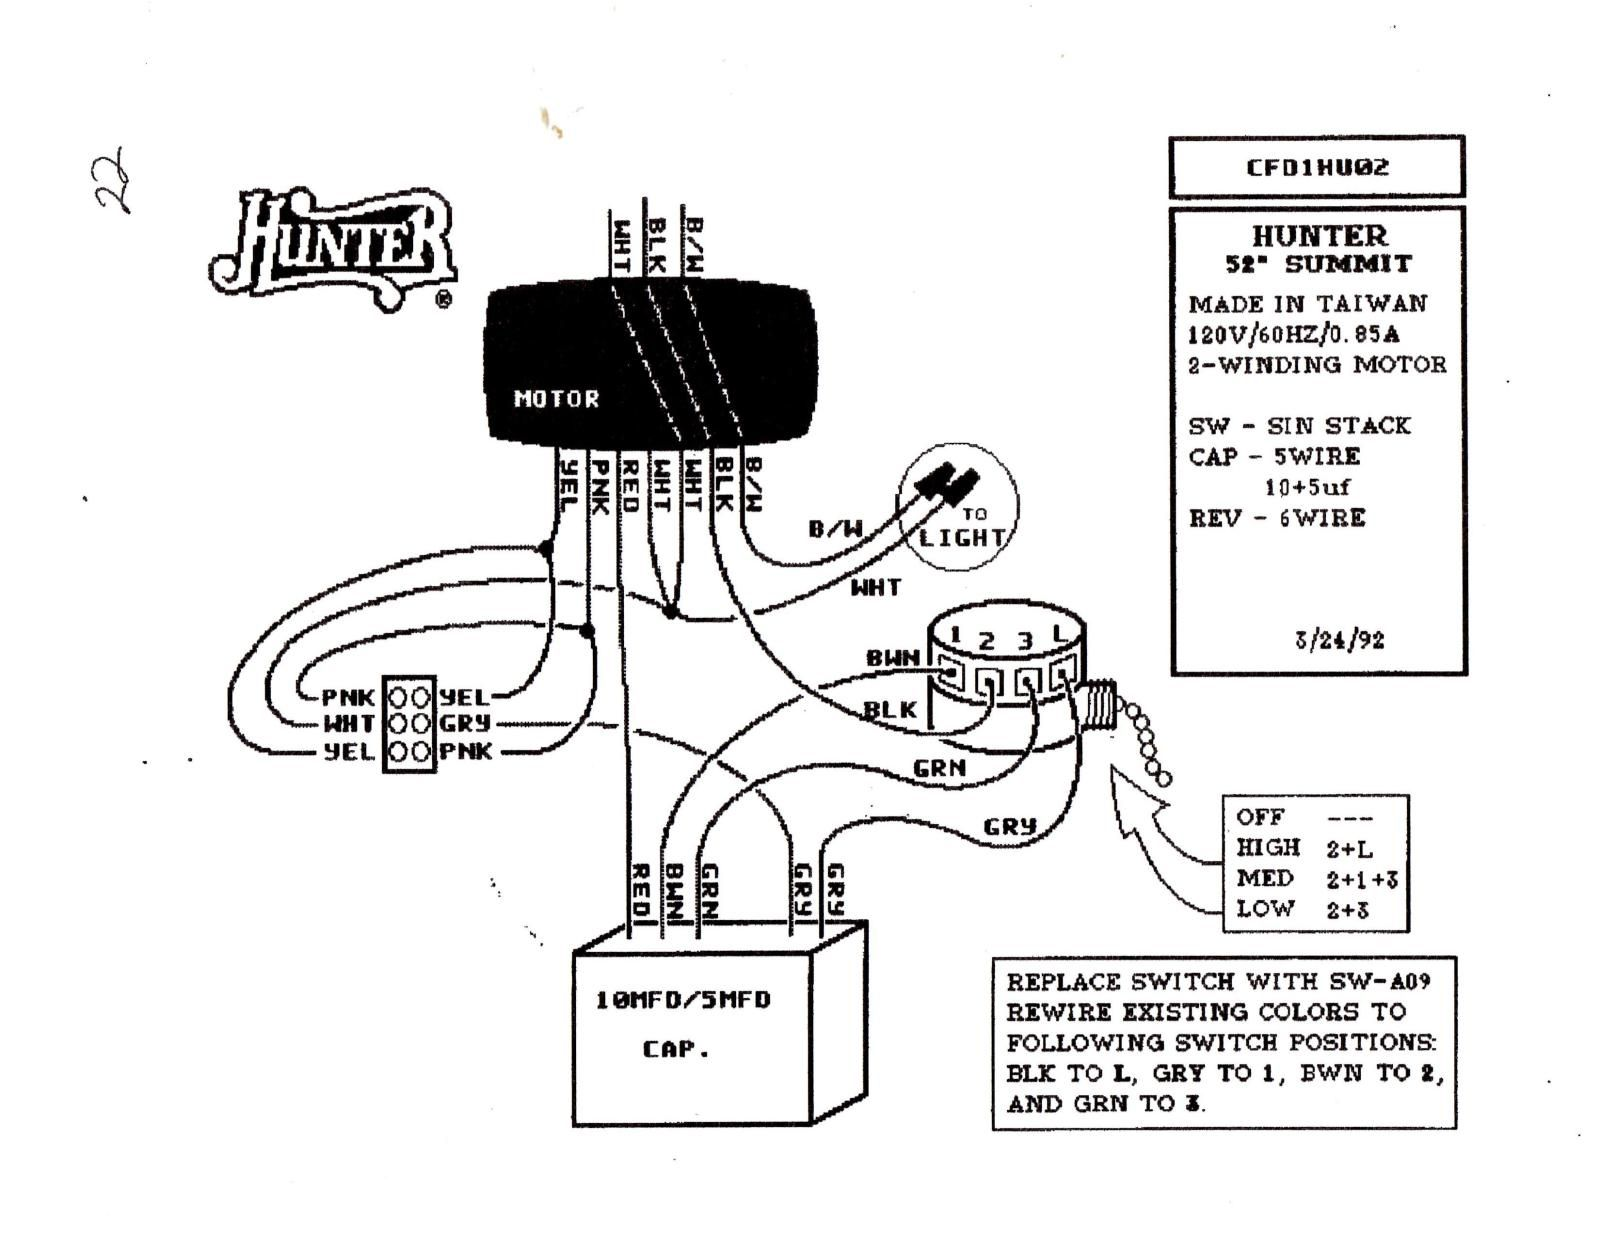 Hunter Ceiling Fan Speed Switch Wiring Diagram Ceiling Fan Wiring Ceiling Fan Switch Hunter Ceiling Fans